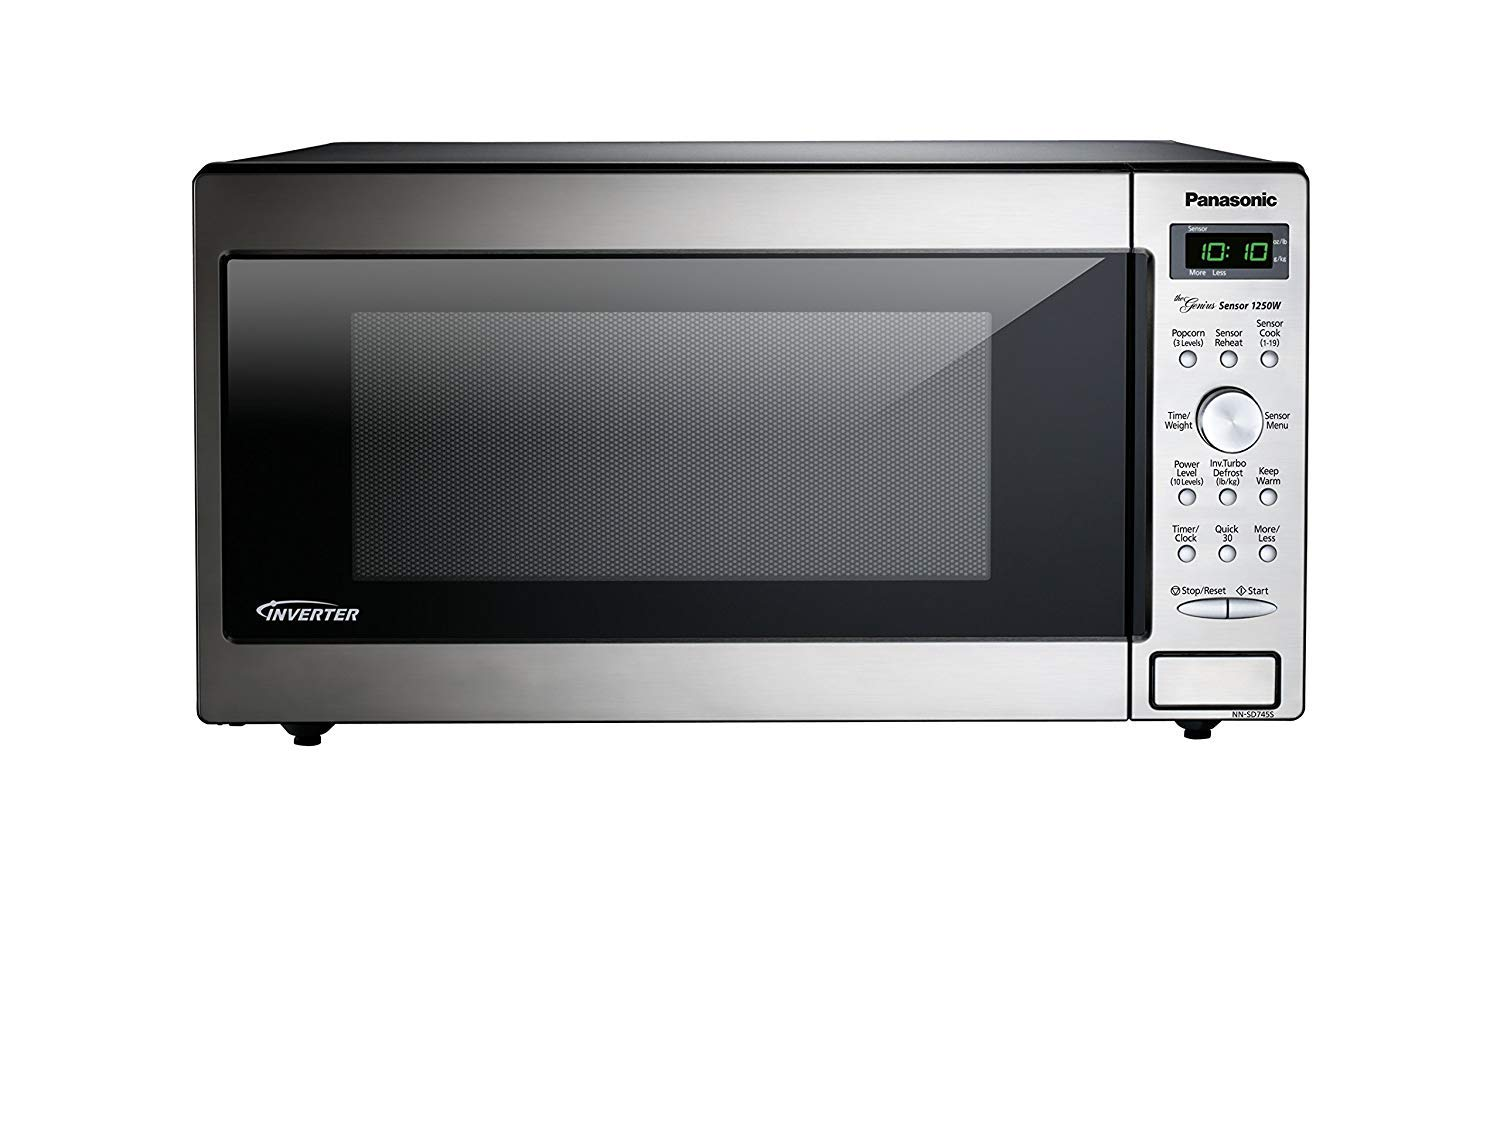 PANASONIC Compact Microwave Oven Built In/Countertop with Inverter Technology and 1250W of Cooking Power - NN-SD745S - 1.6 cu. Ft (Stainless Steel/Silver)